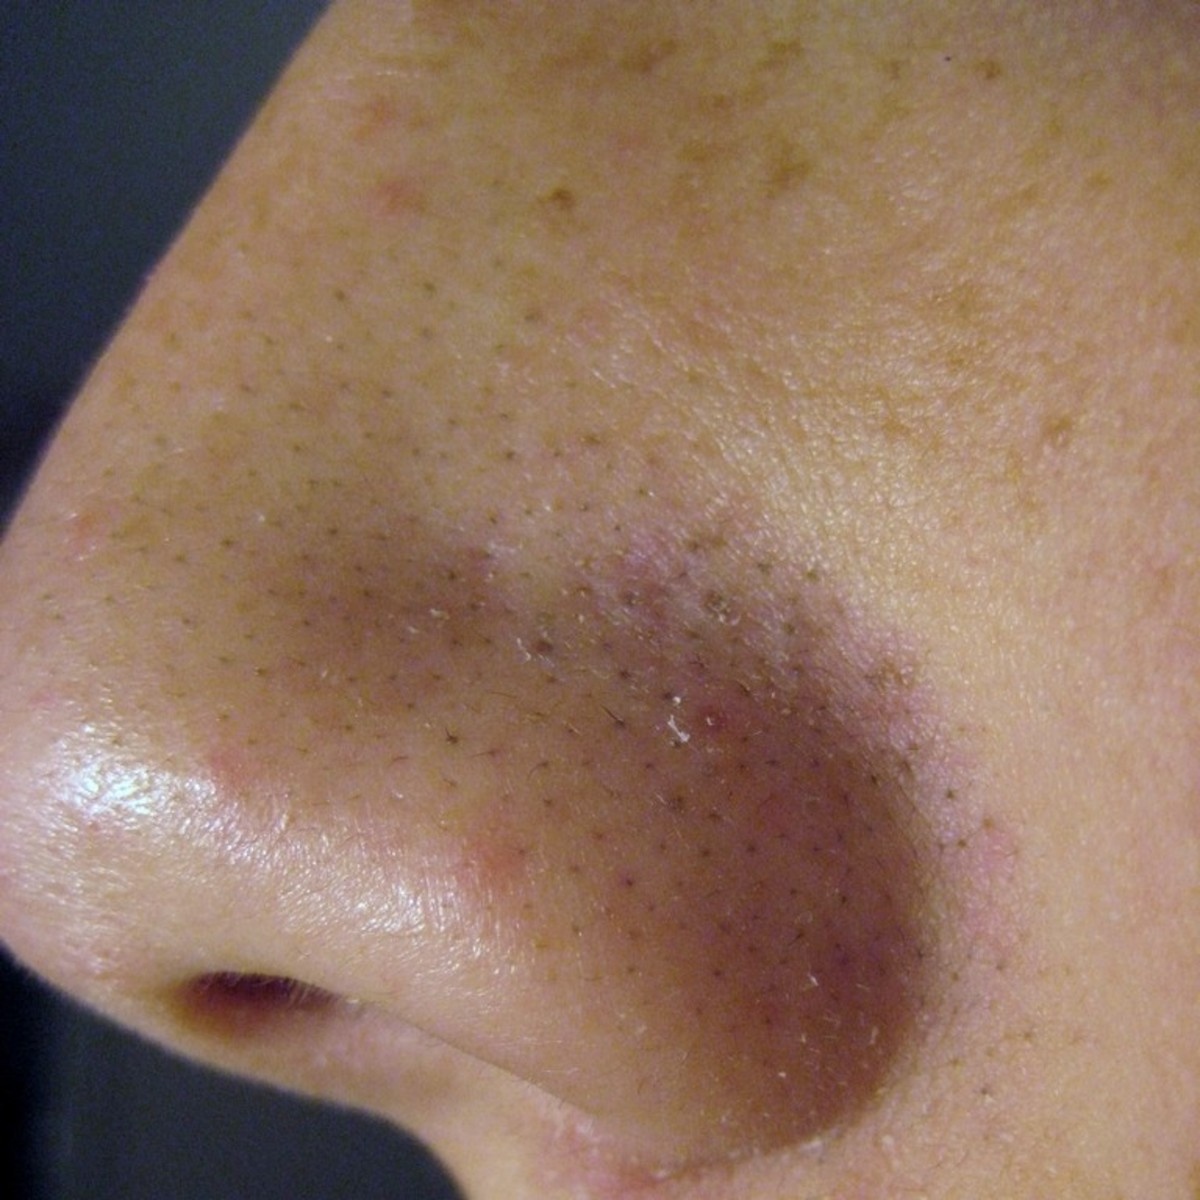 Blackheads are commonly found on the nose, chin and cheek areas. This picture shows them on a 14-year-old male.